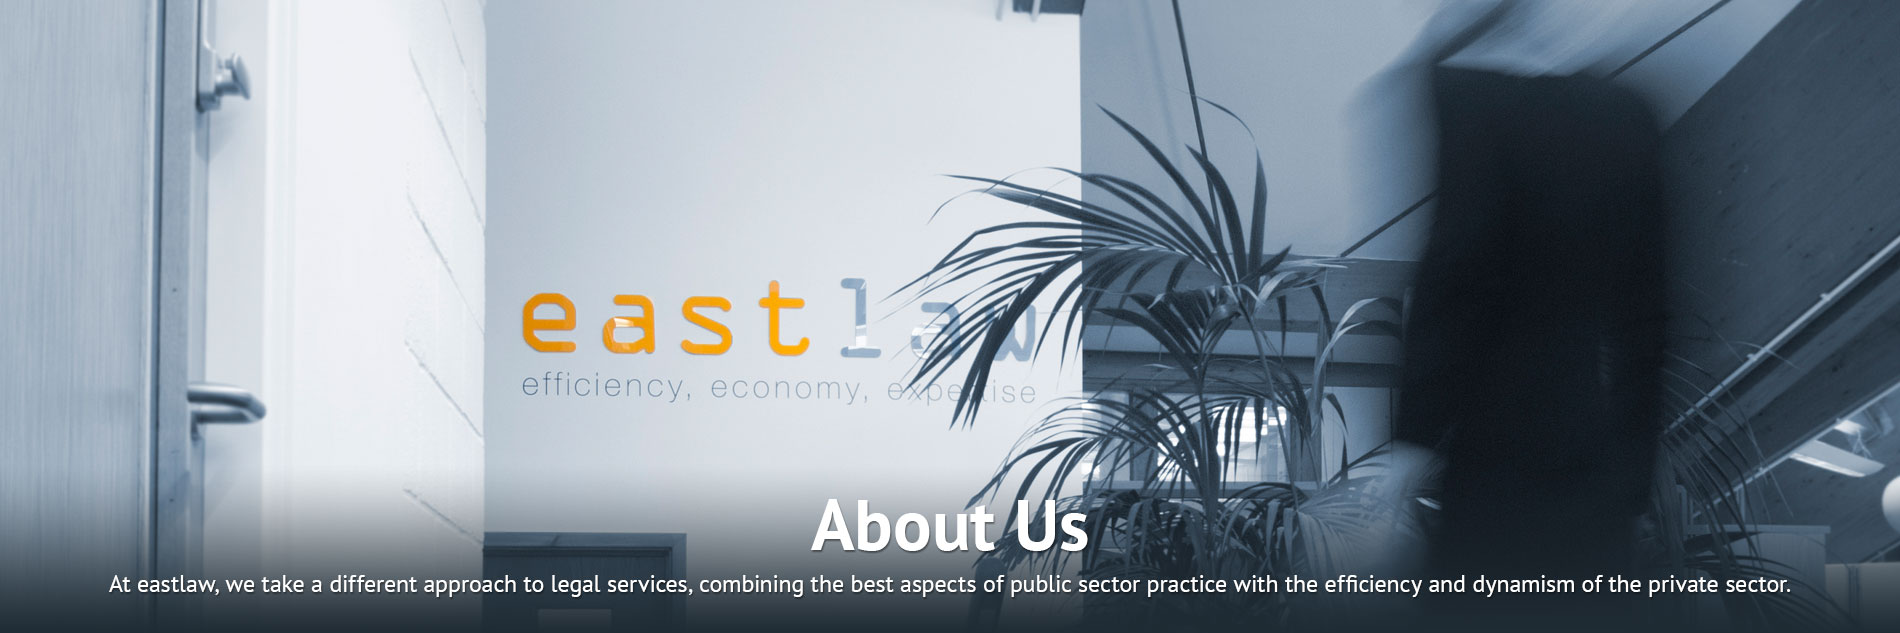 About Us: At eastlaw, we take a different approach to legal services, combining the best aspects of public sector practice with the efficiency and dynamism of the private sector.